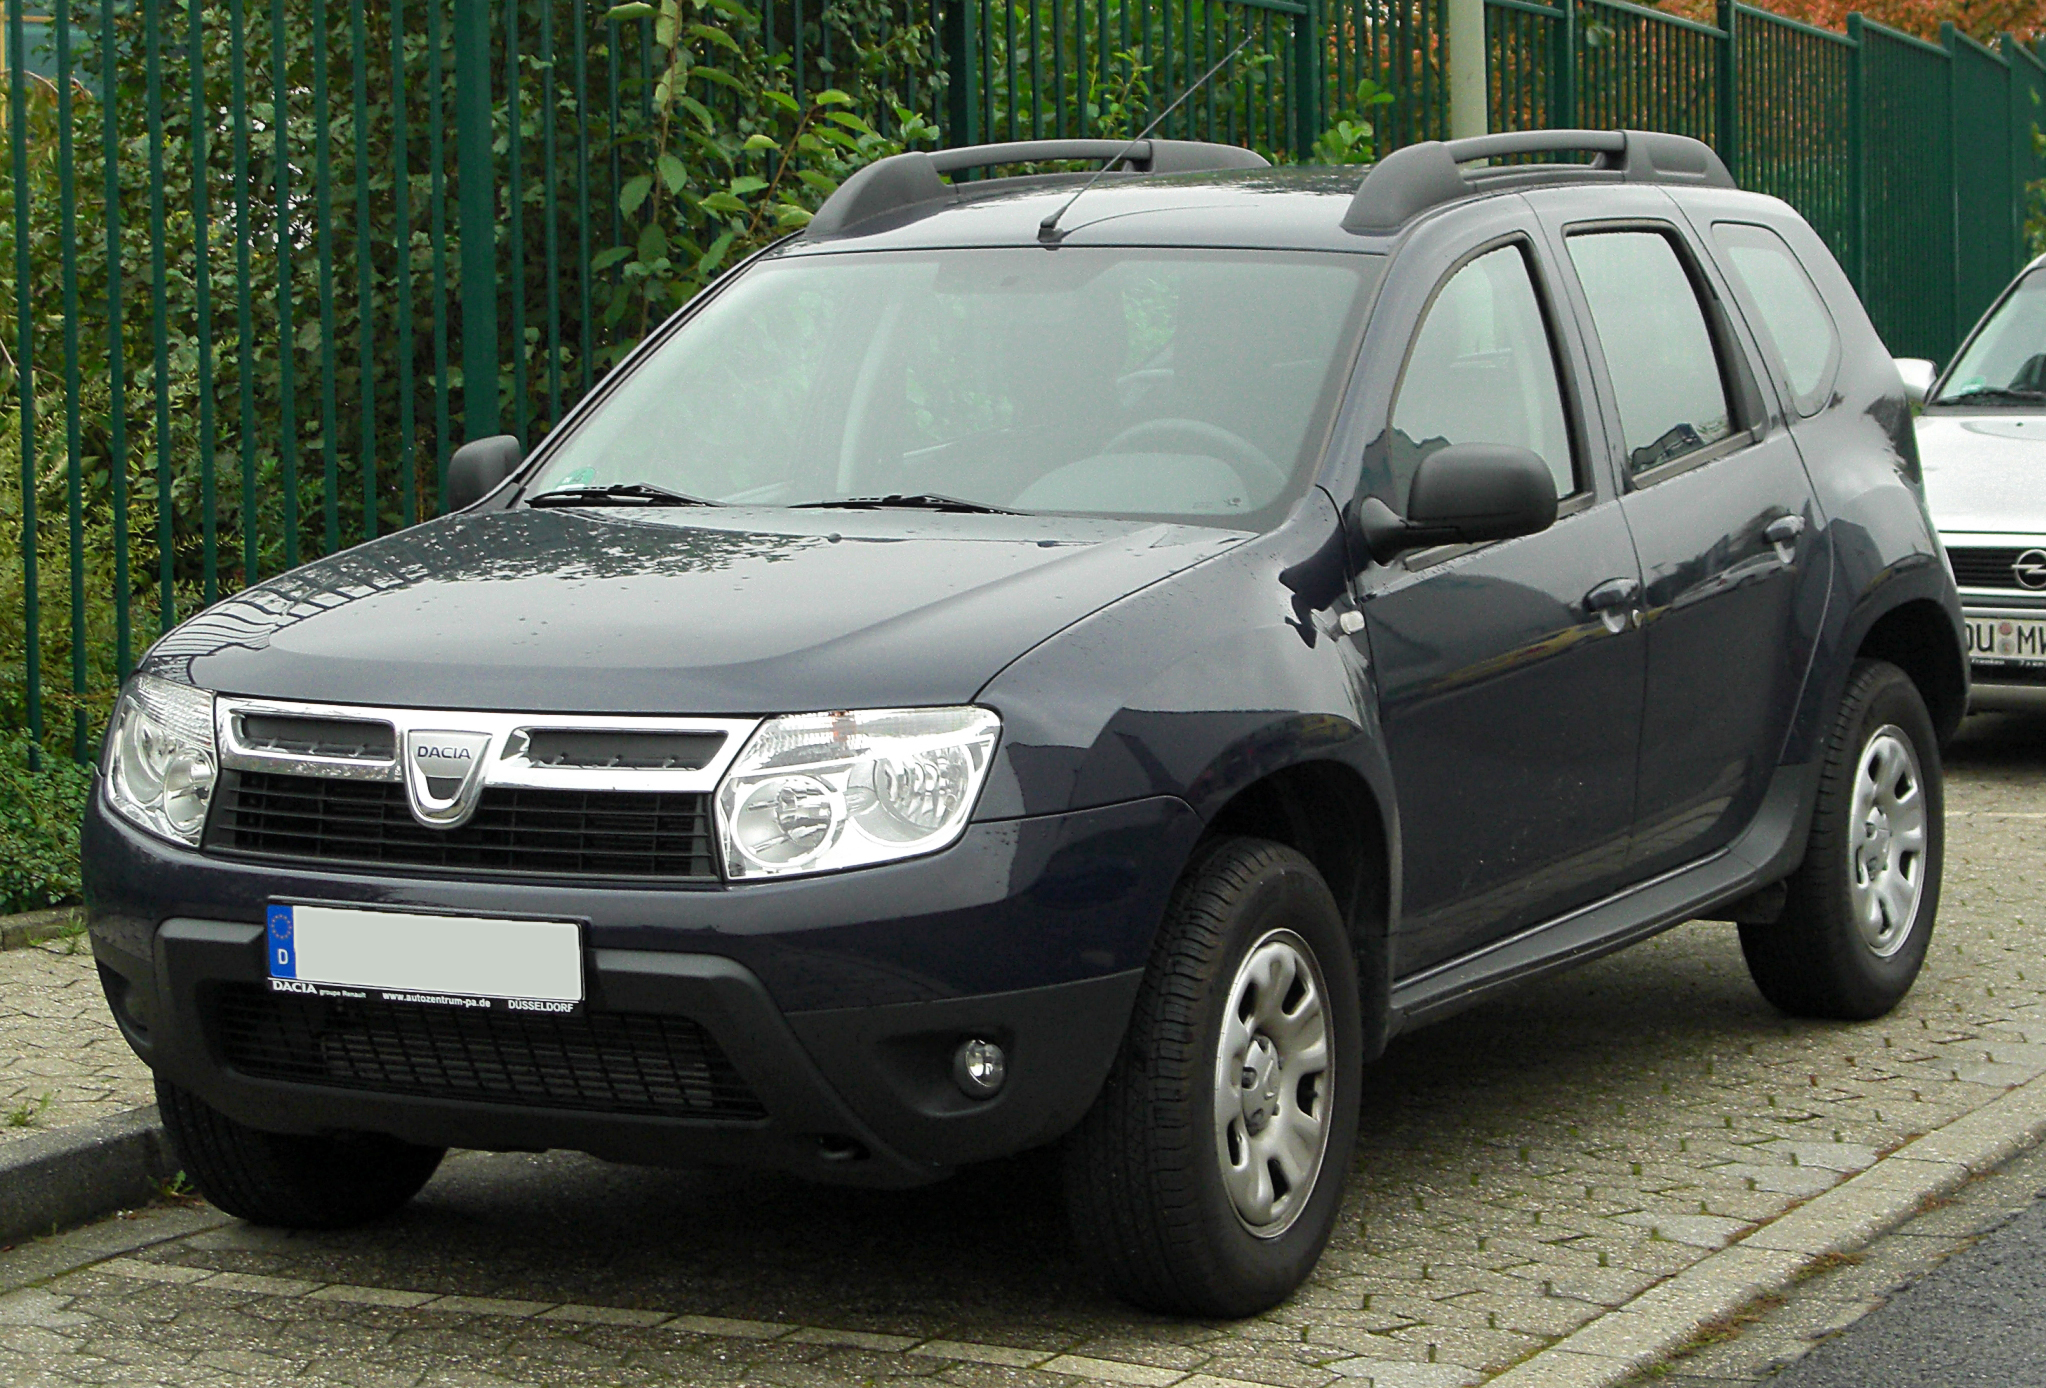 file dacia duster 1 5 dci front. Black Bedroom Furniture Sets. Home Design Ideas